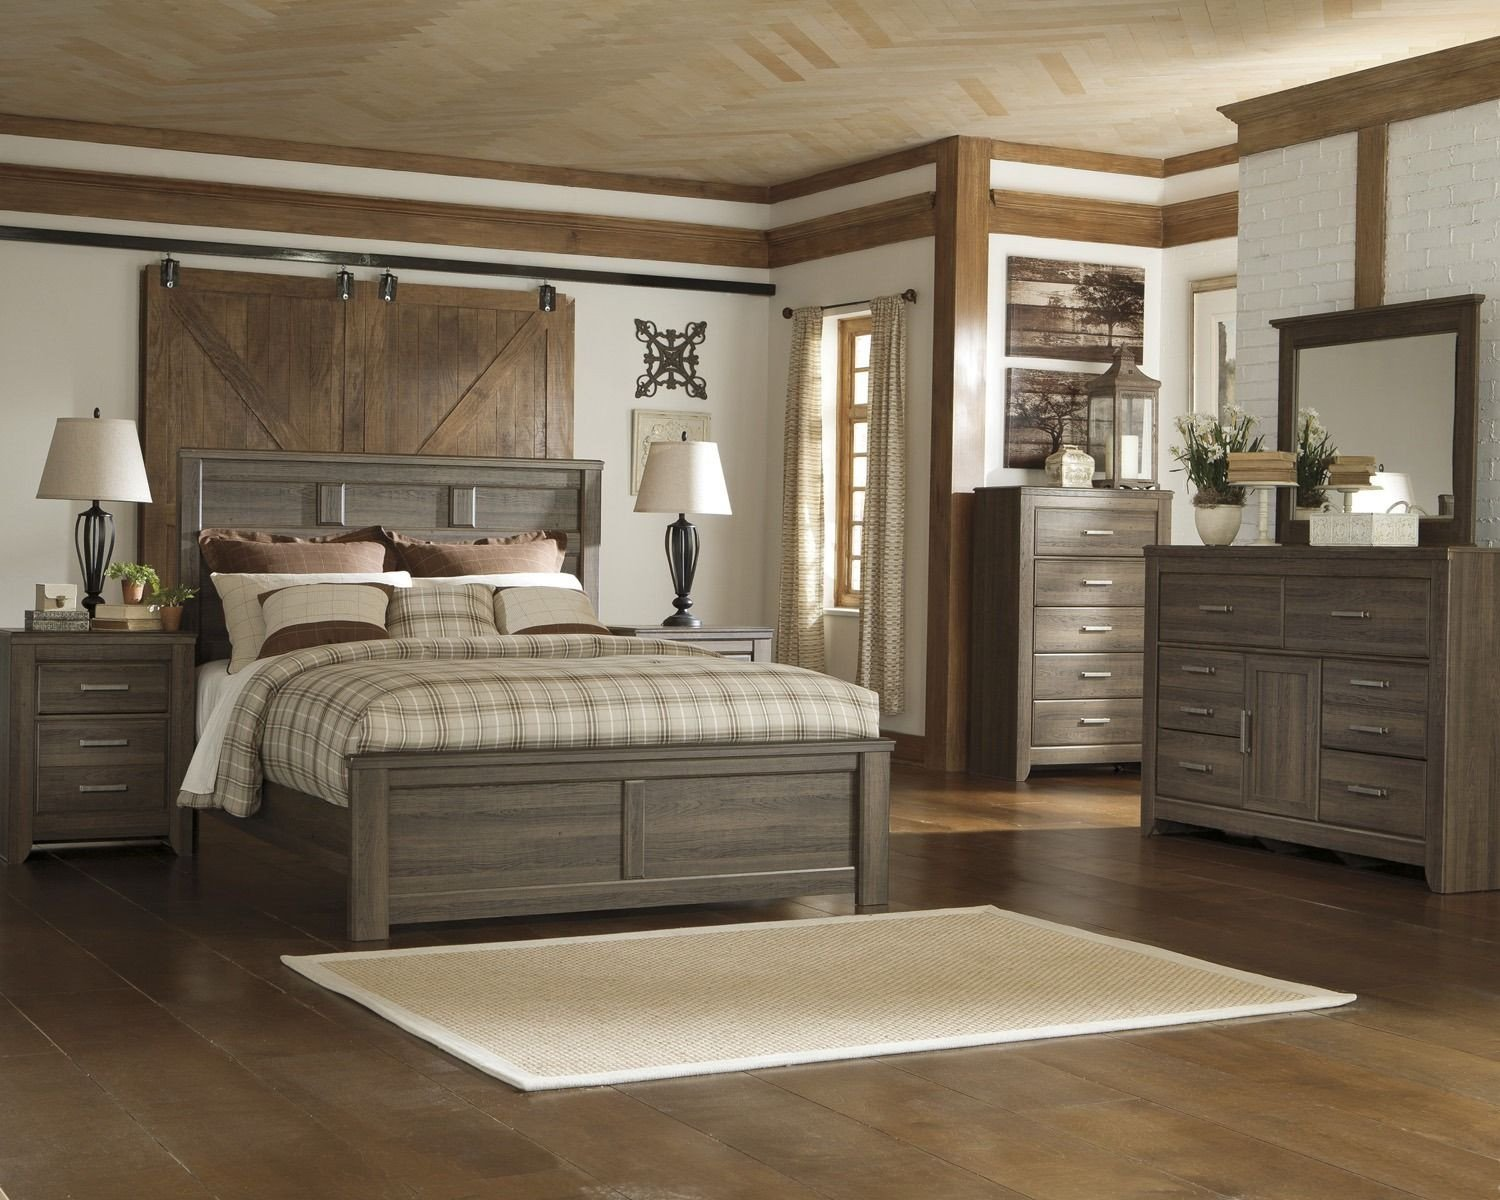 Ashley White Bedroom Set Luxury Juararo Panel Bedroom Set by ashley Home Gallery Stores